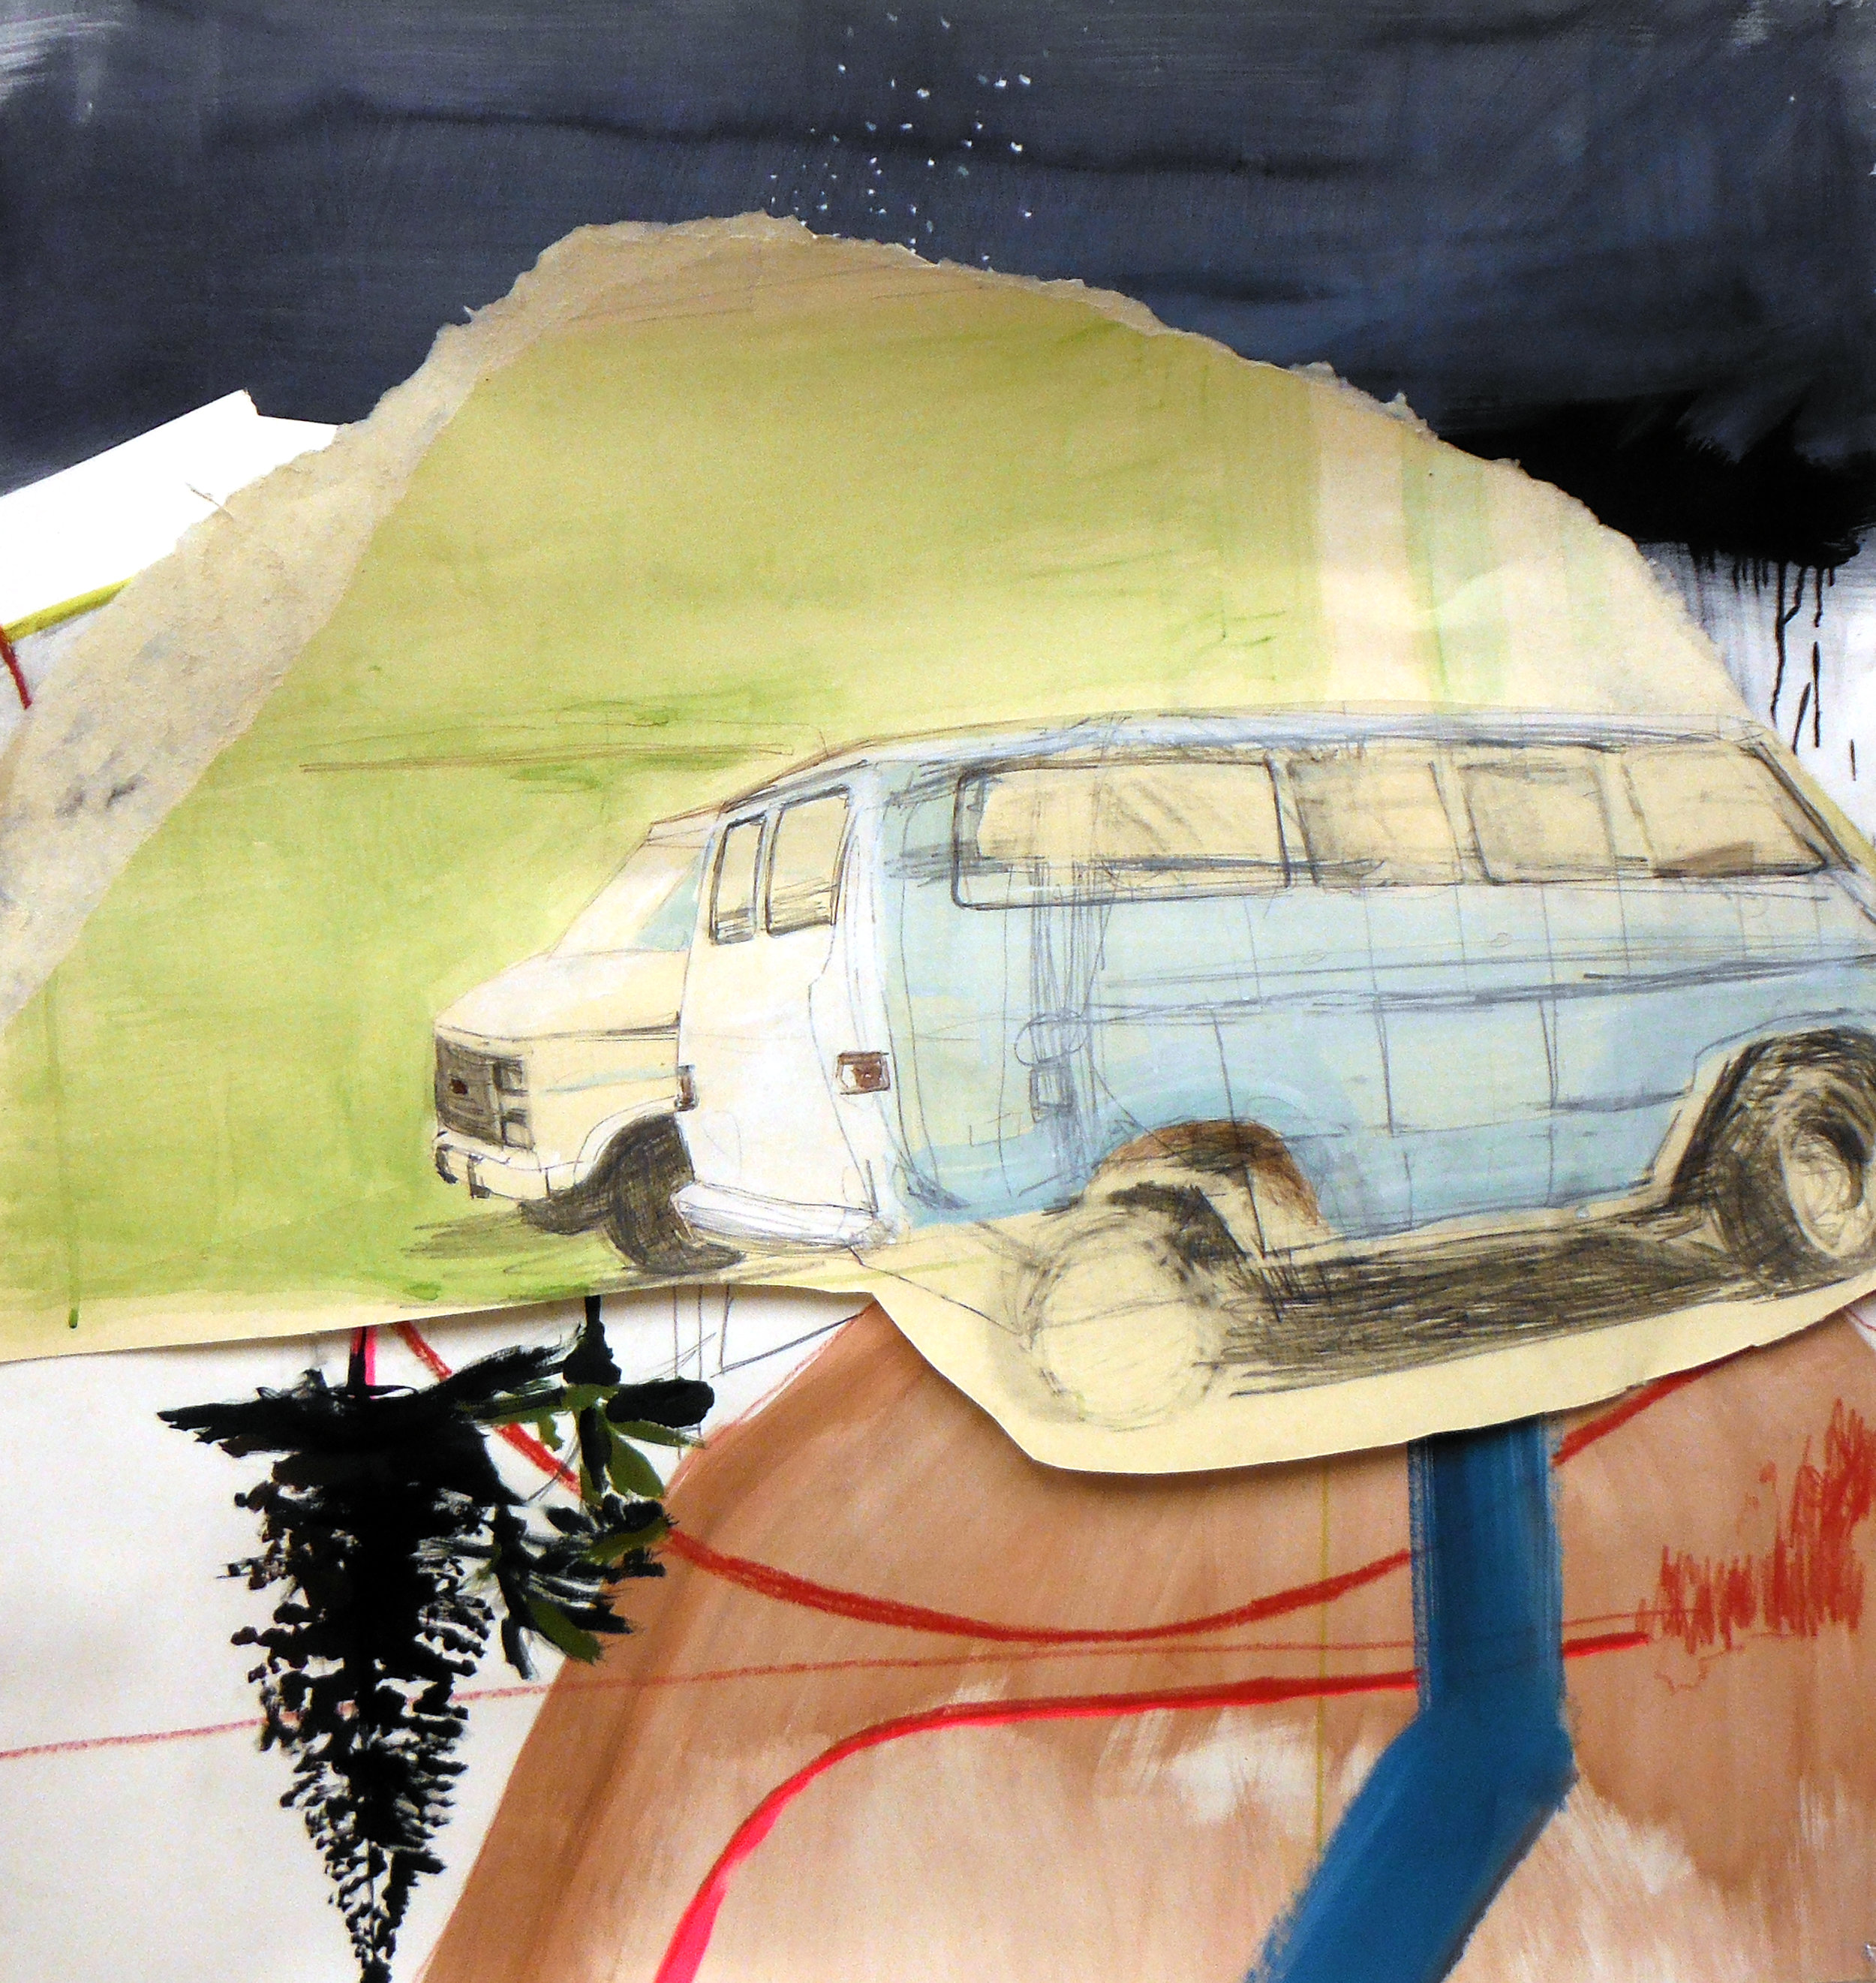 Two Vans, 36 x 32 inches, acrylic and graphite on paper, 2013